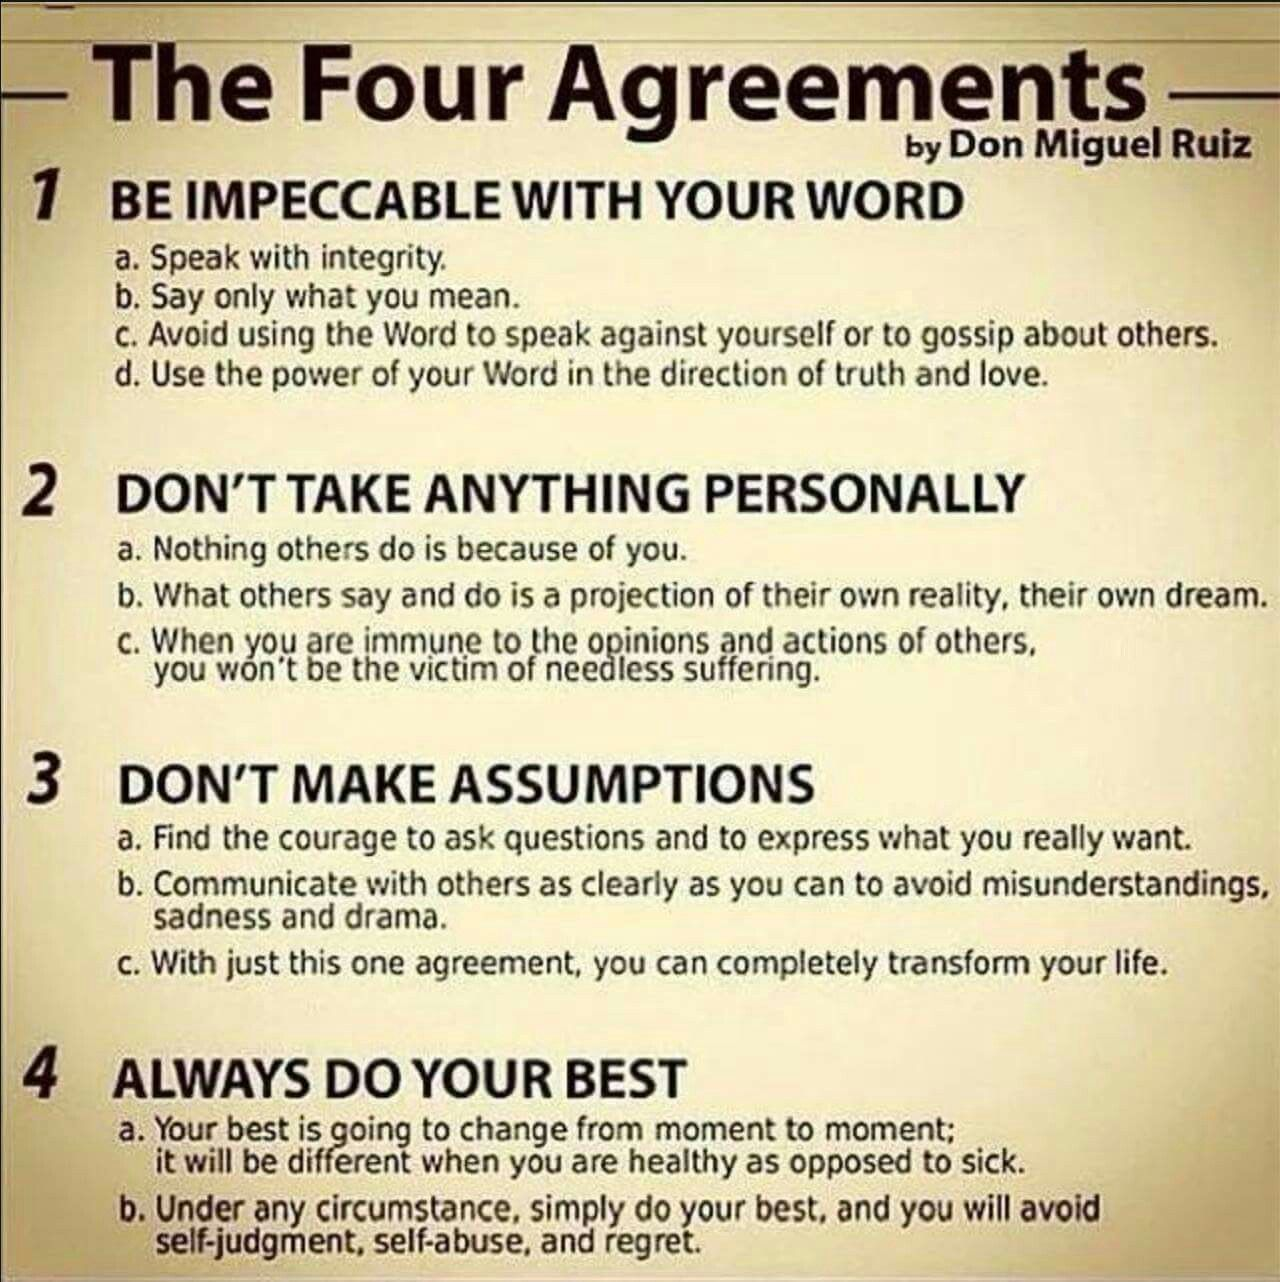 Four Agreements Quotes Don Miguel Ruiz  Inspirational  Pinterest  Wisdom Mind Body